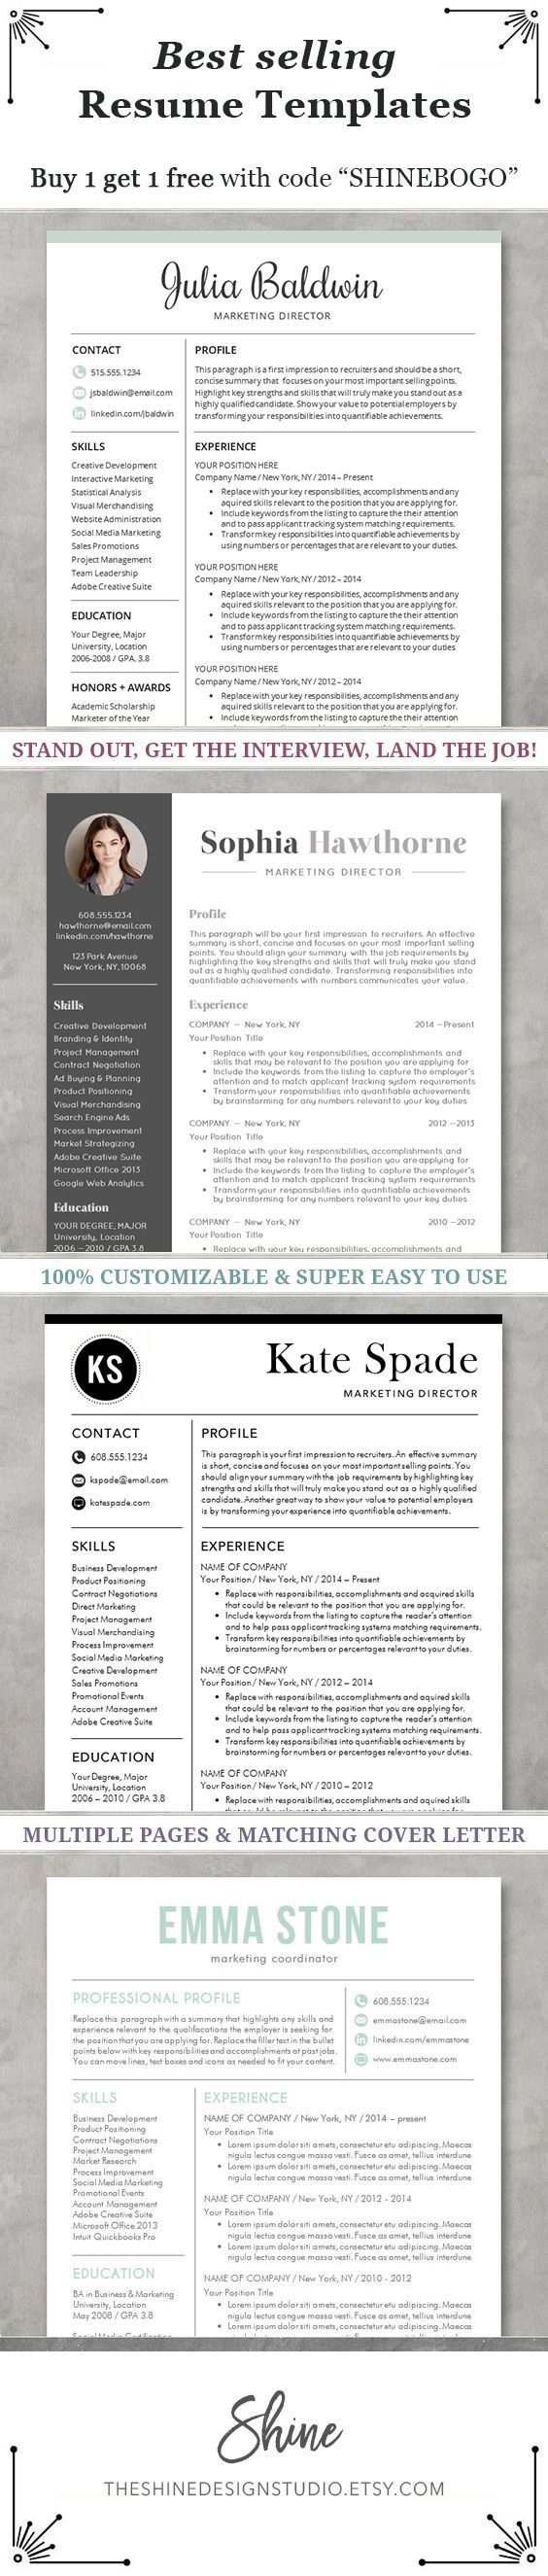 best ideas about resume templates resume resume instant 9733 resume templates cv template elegant resume designs for word